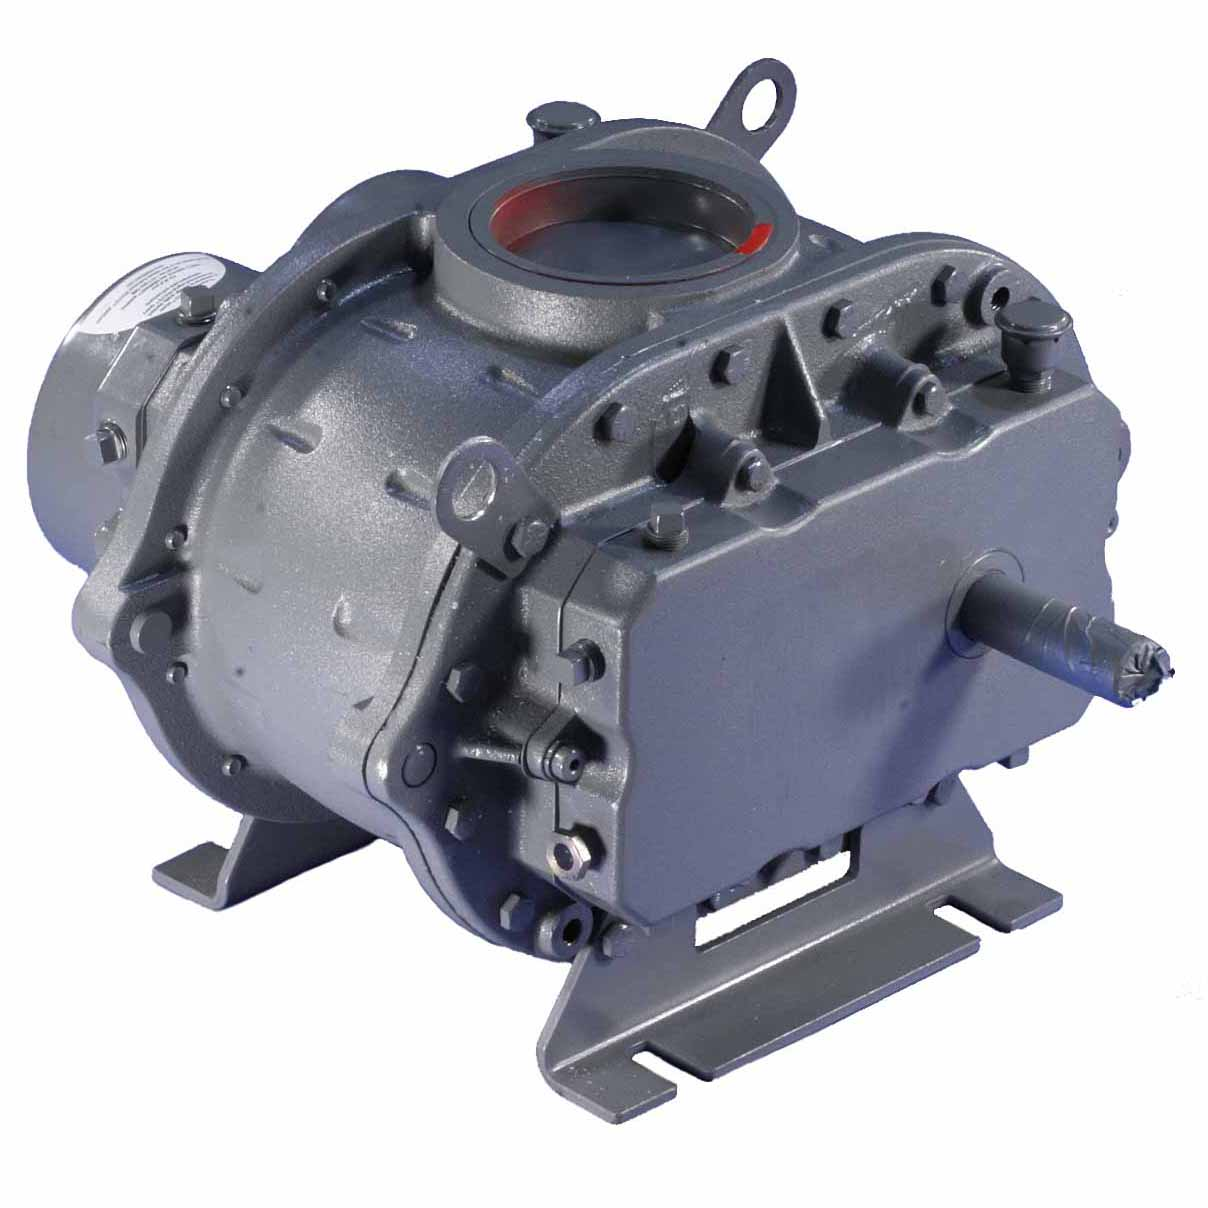 Positive Displacement Blower : Roots universal rai dsl rotary positive displacement